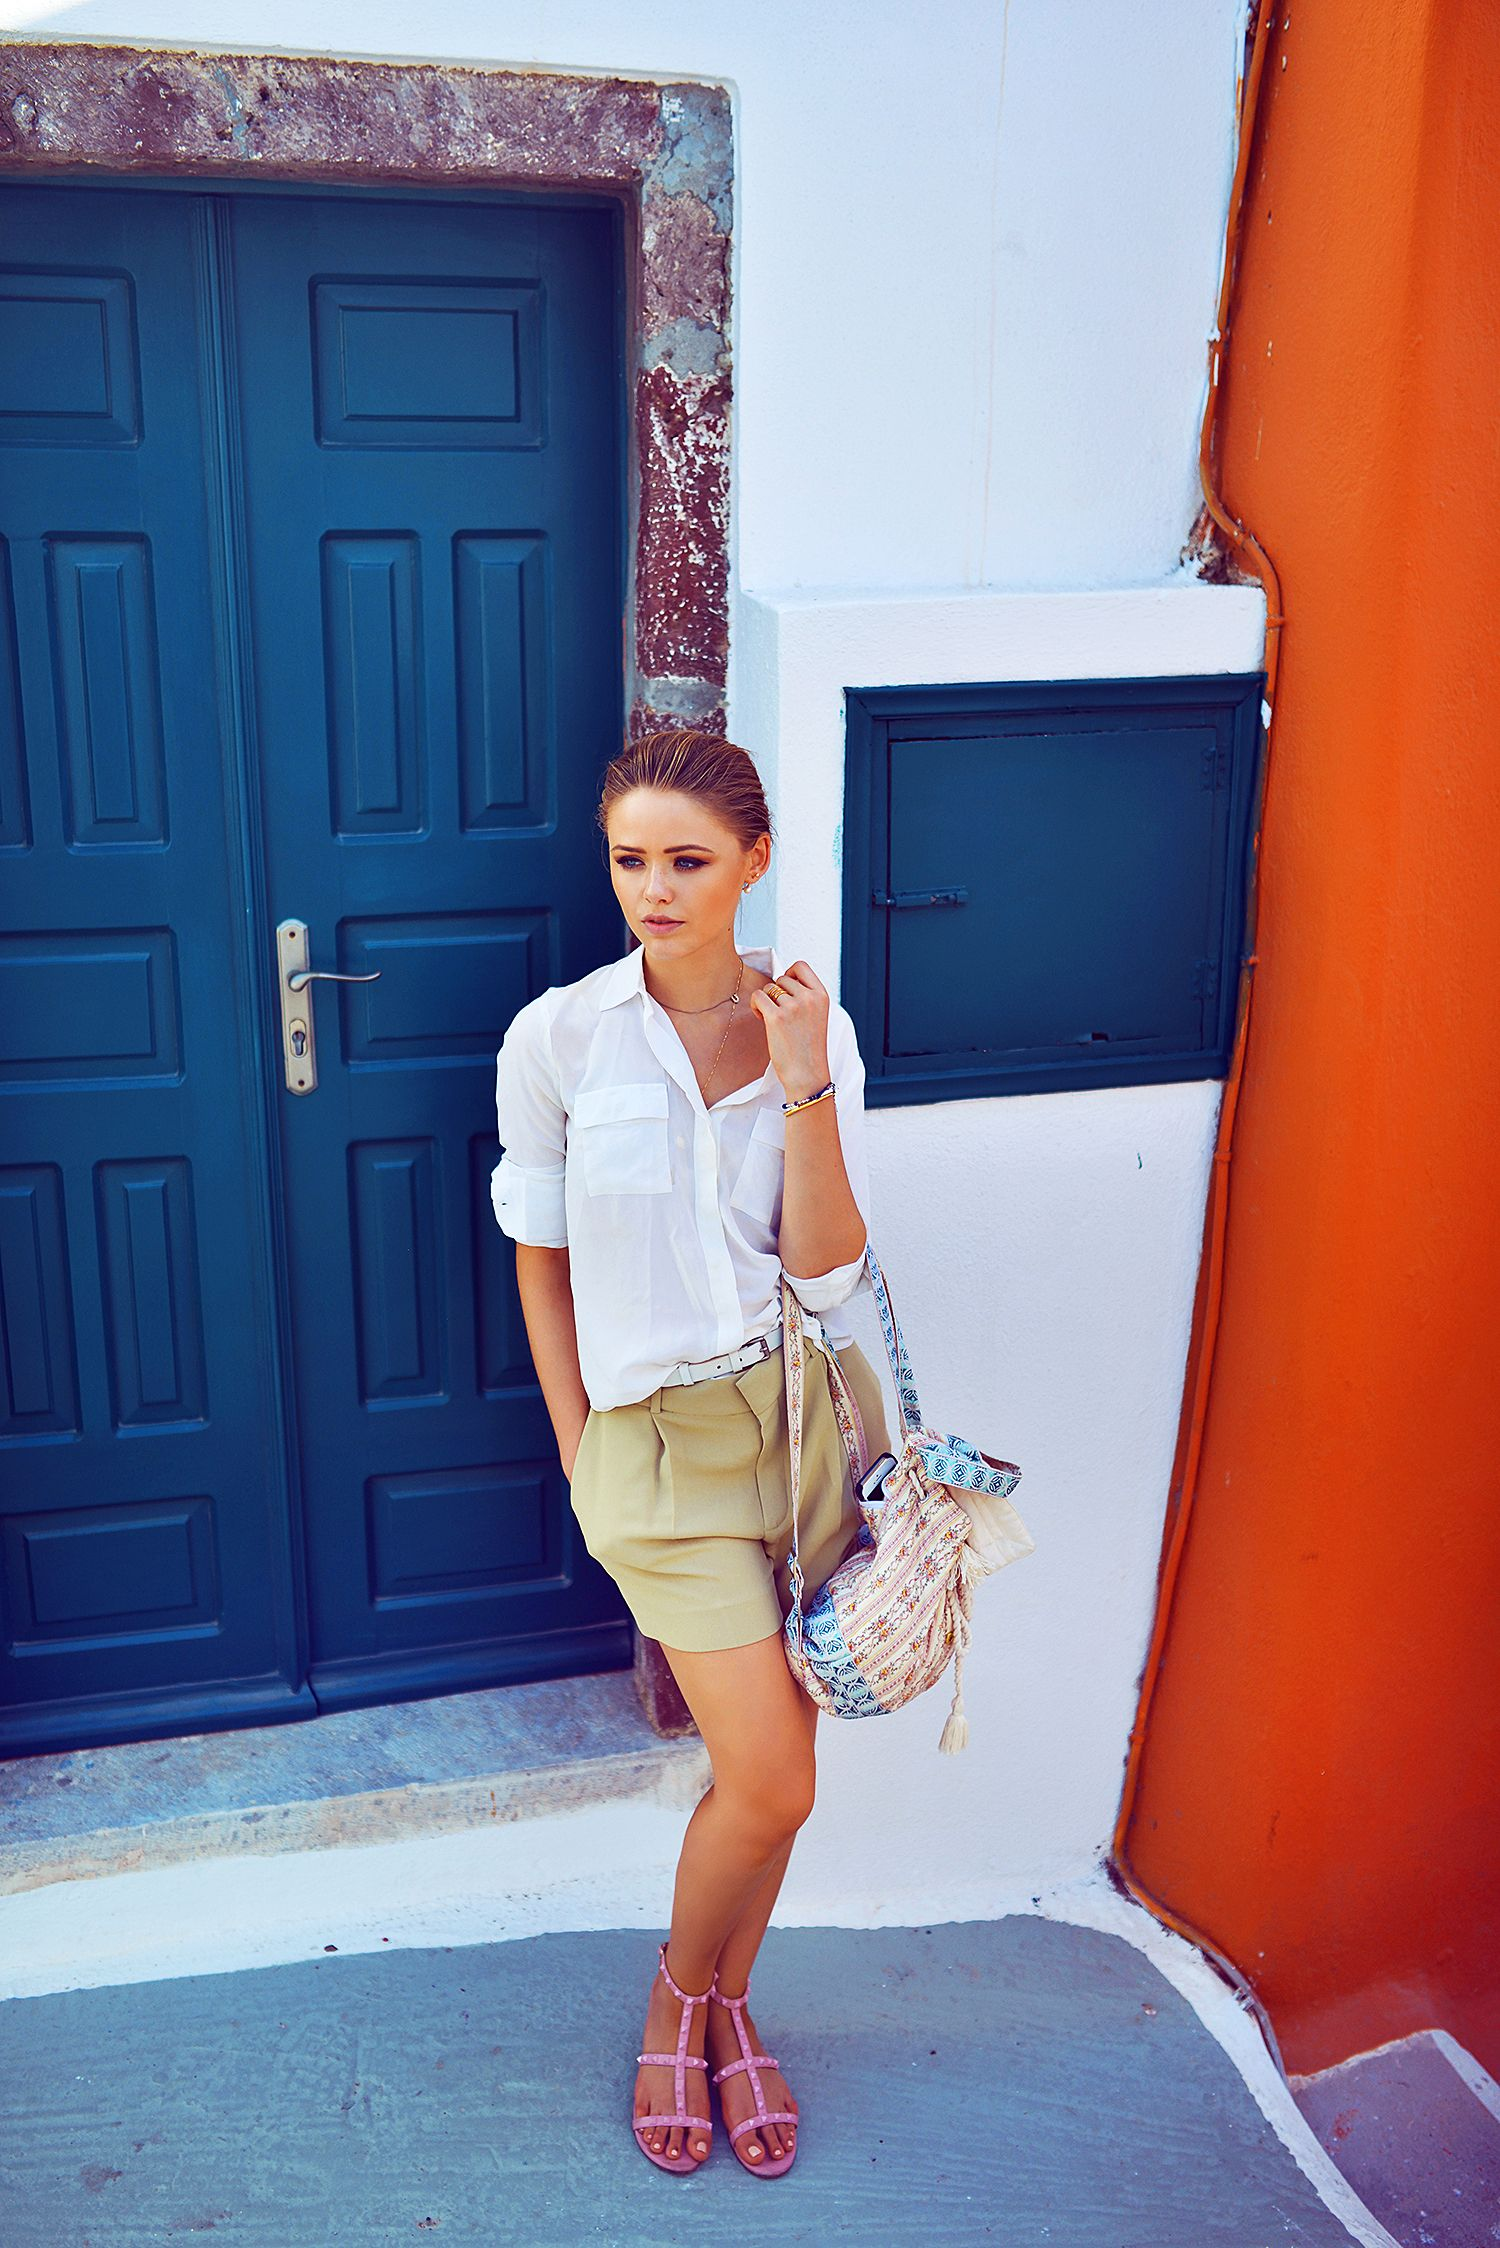 Kristina Bazan is wearing short shorts from Chloé, white top from Anine Bing and shoes from Valentino